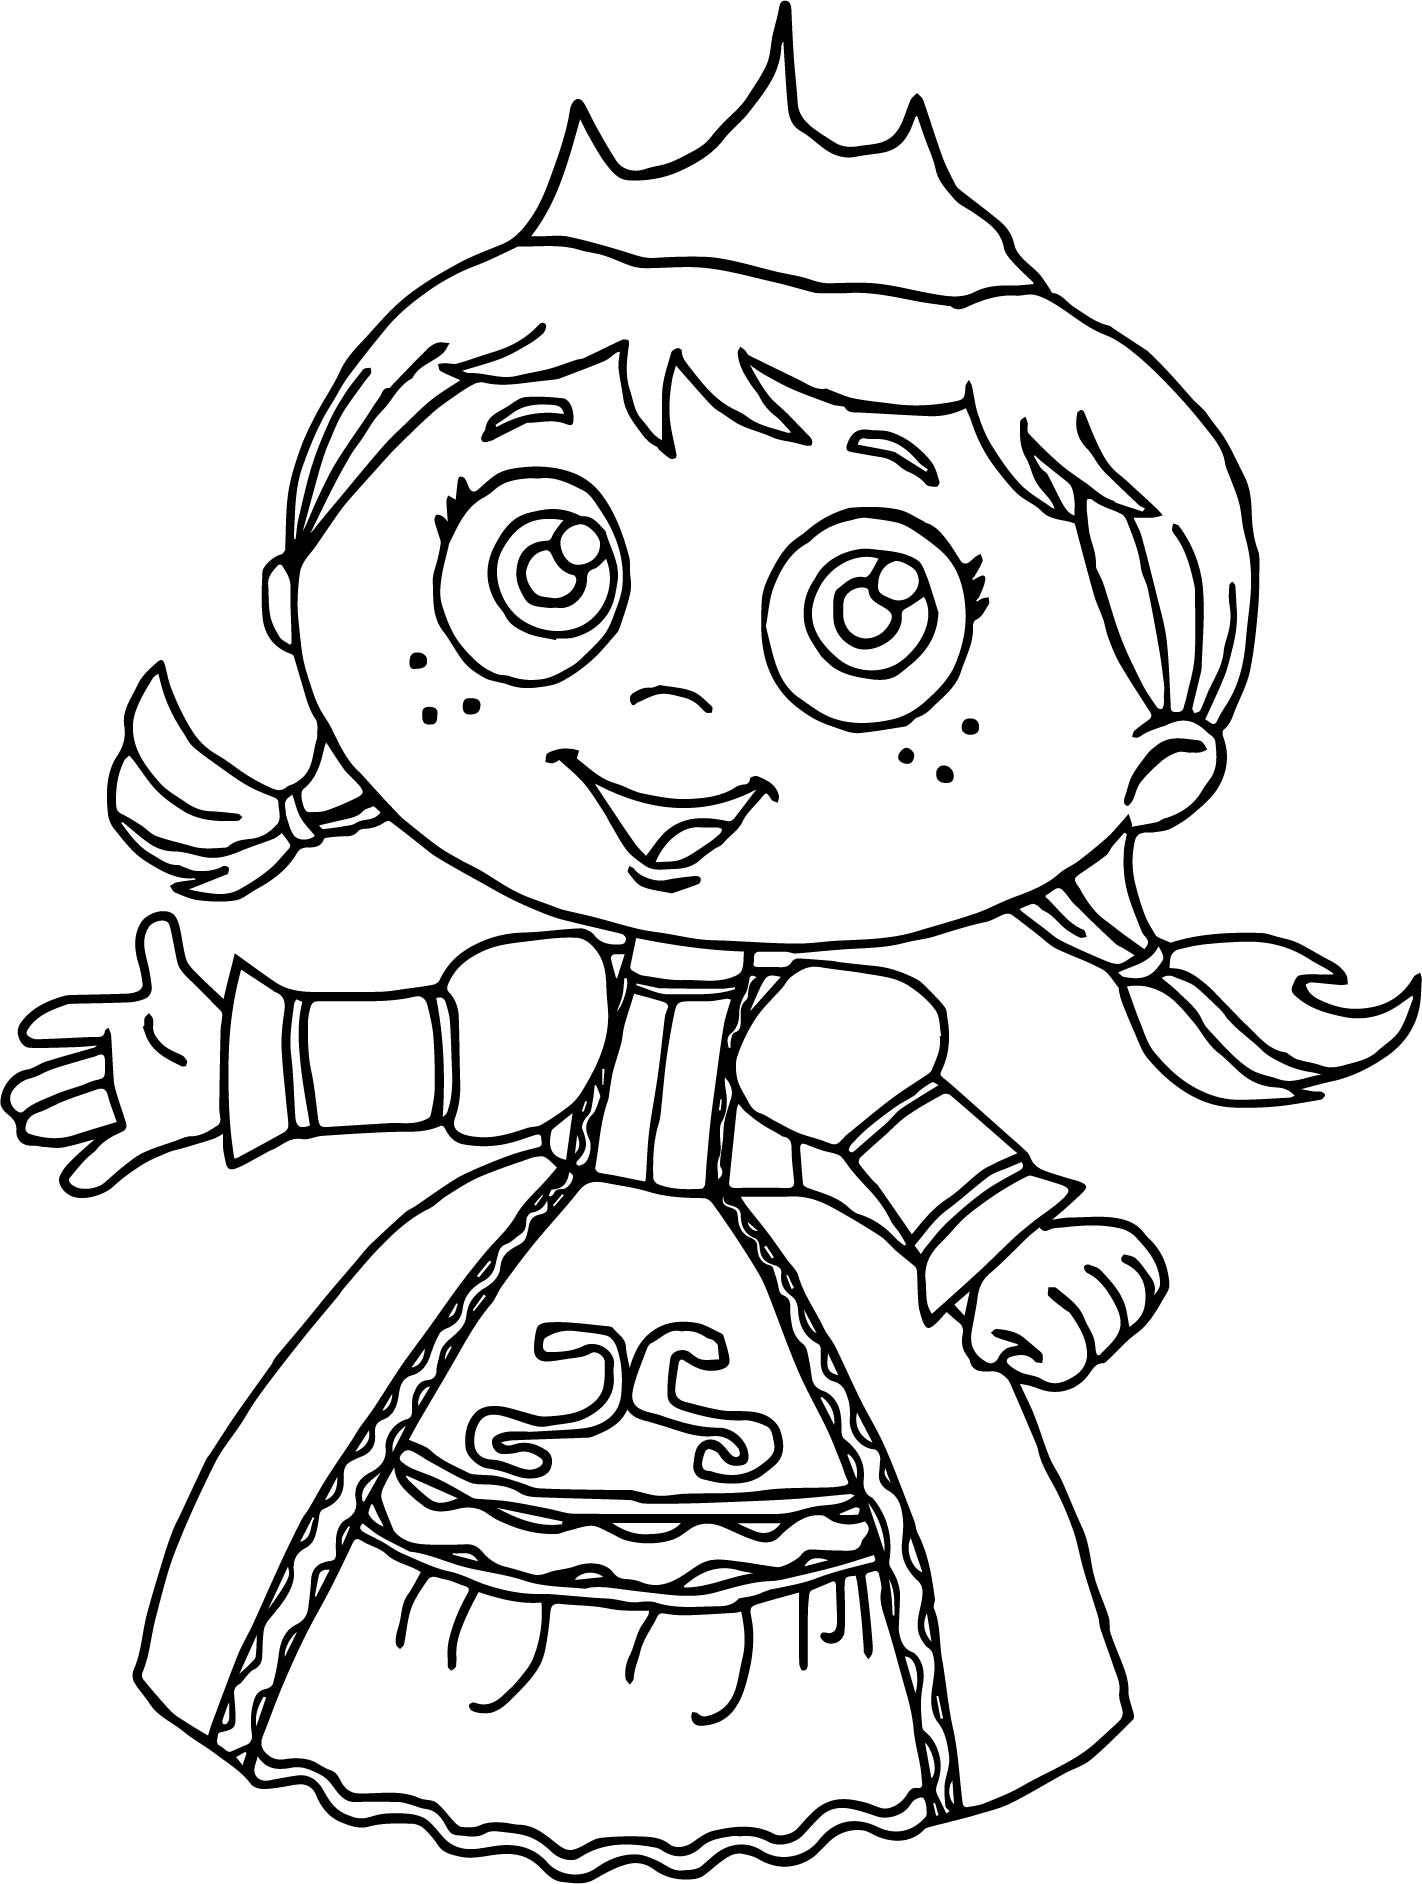 It is a picture of Bright Super Why Coloring Book